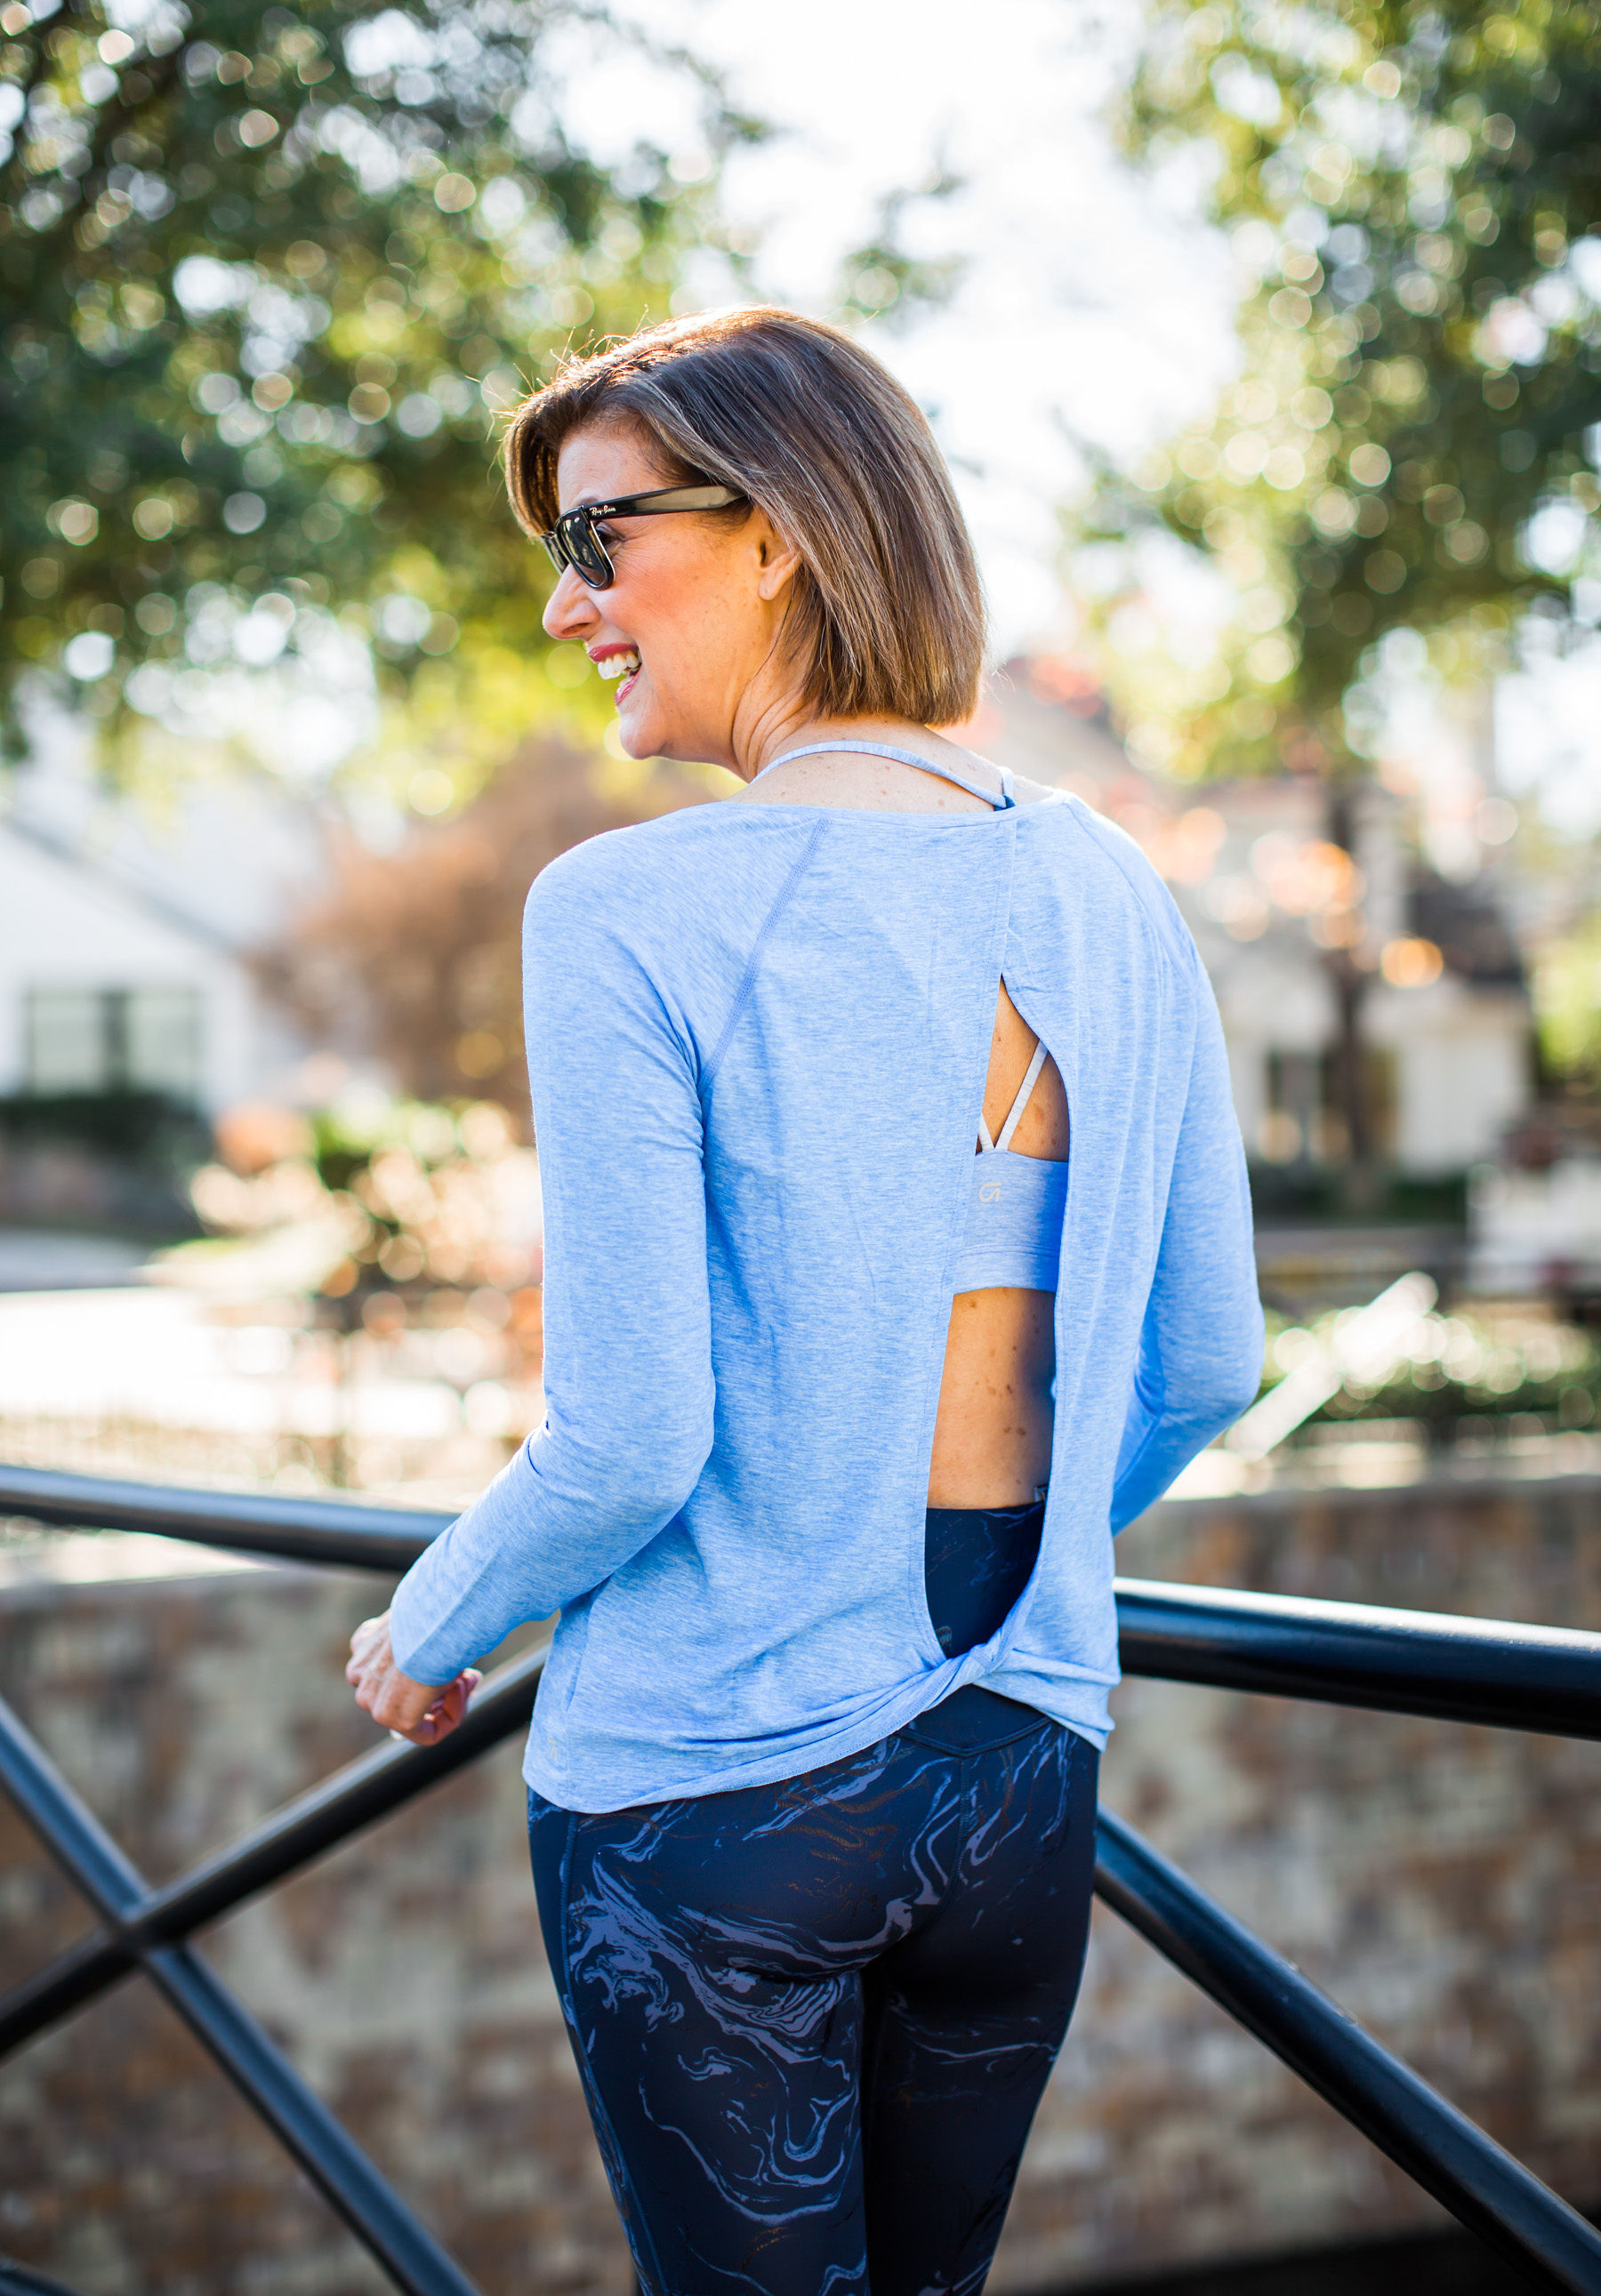 Over 50 blogger in Gap fit work out gear